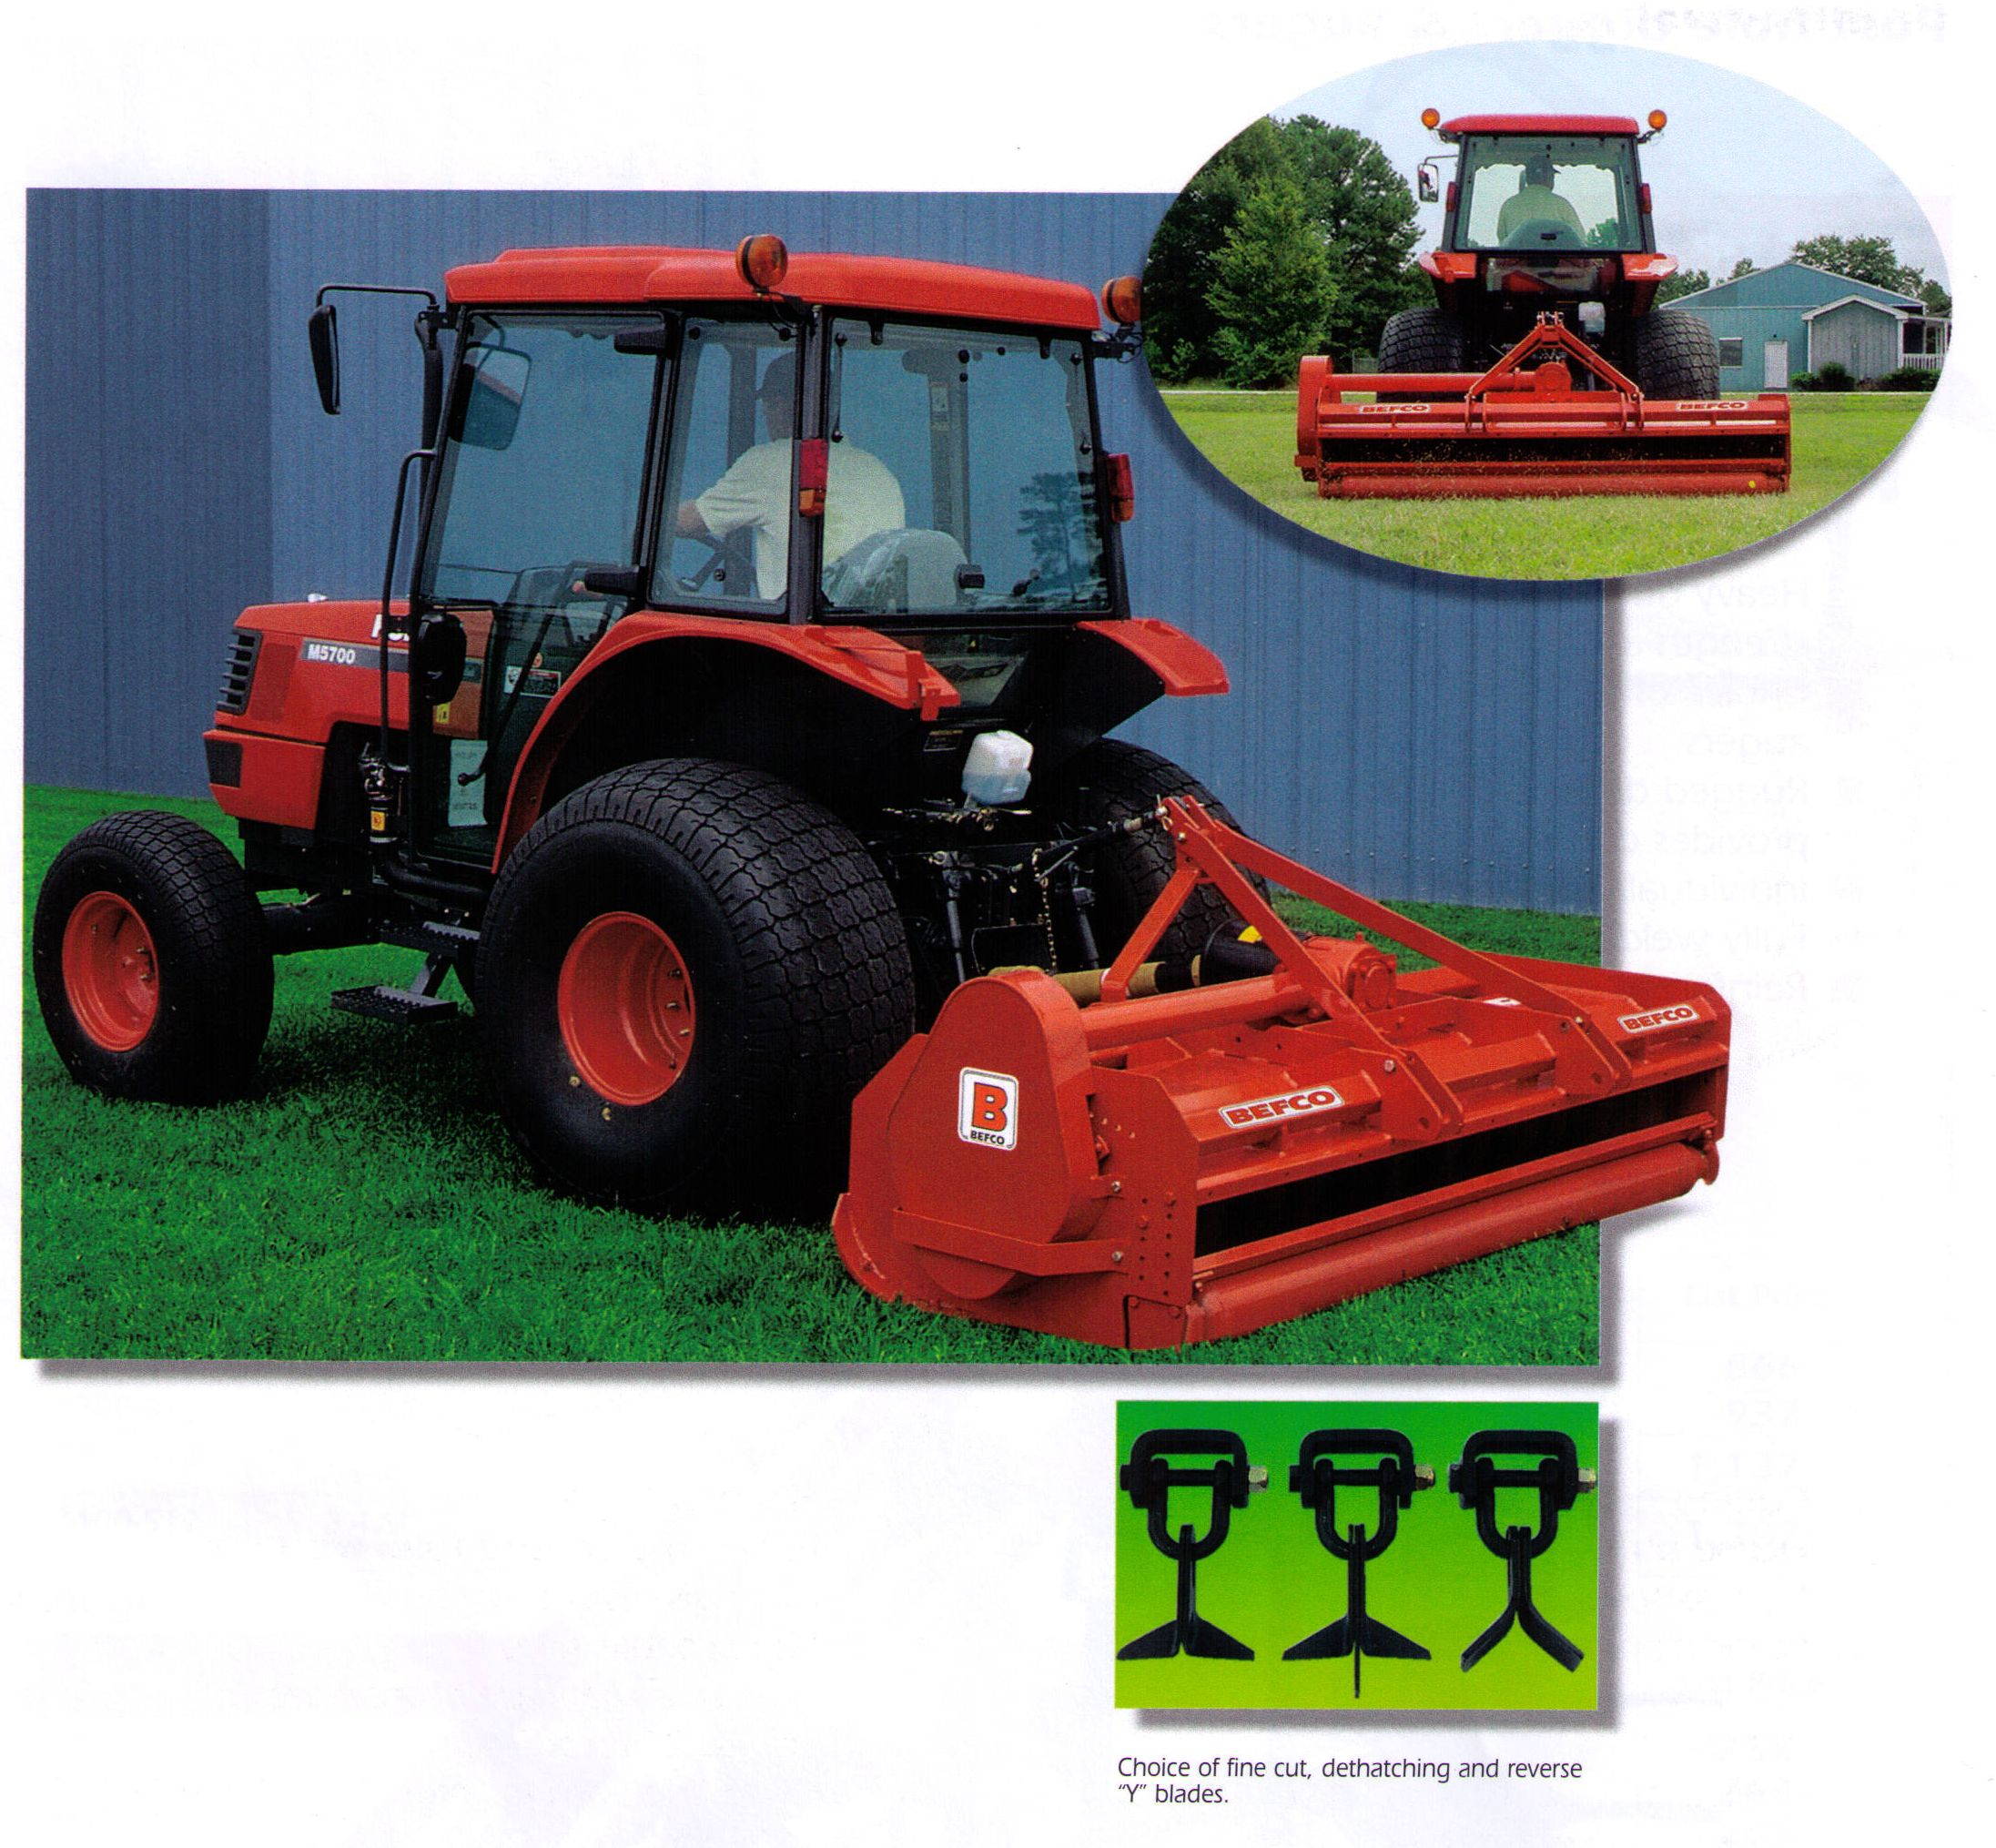 H80 Series Hurricane Finish Type Flail Mowers